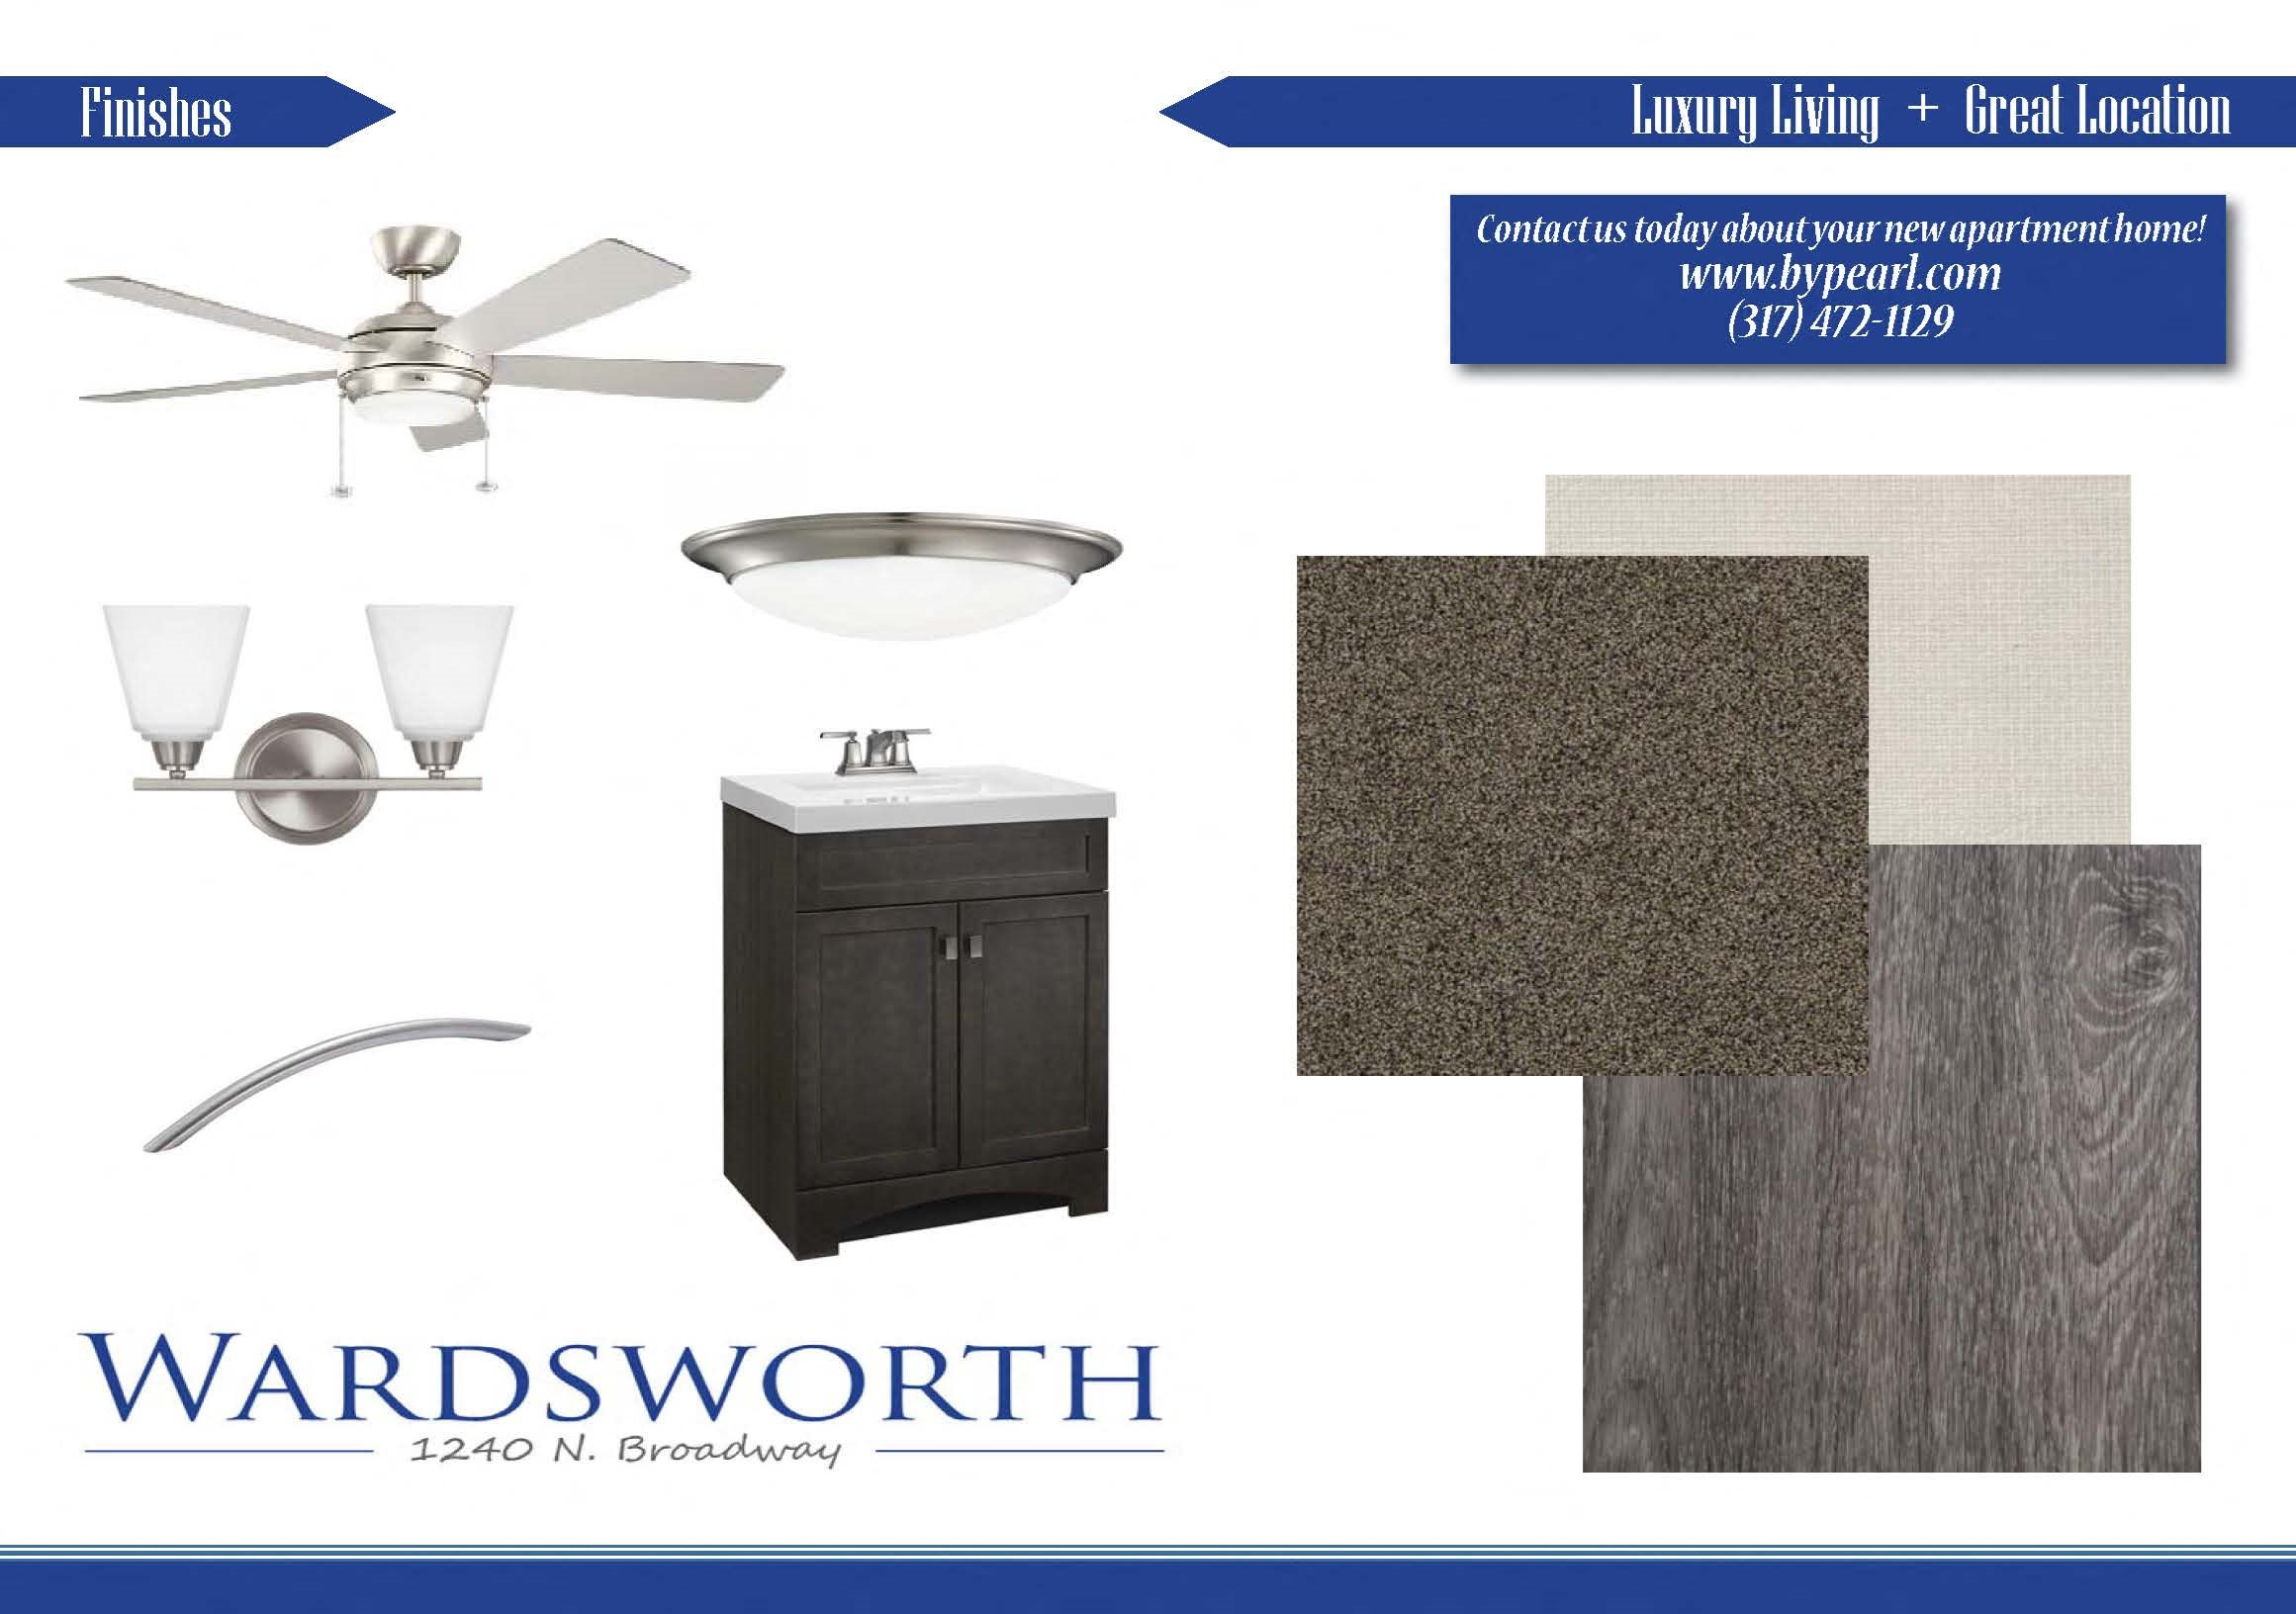 Wardsworth Upgrades and Finishes